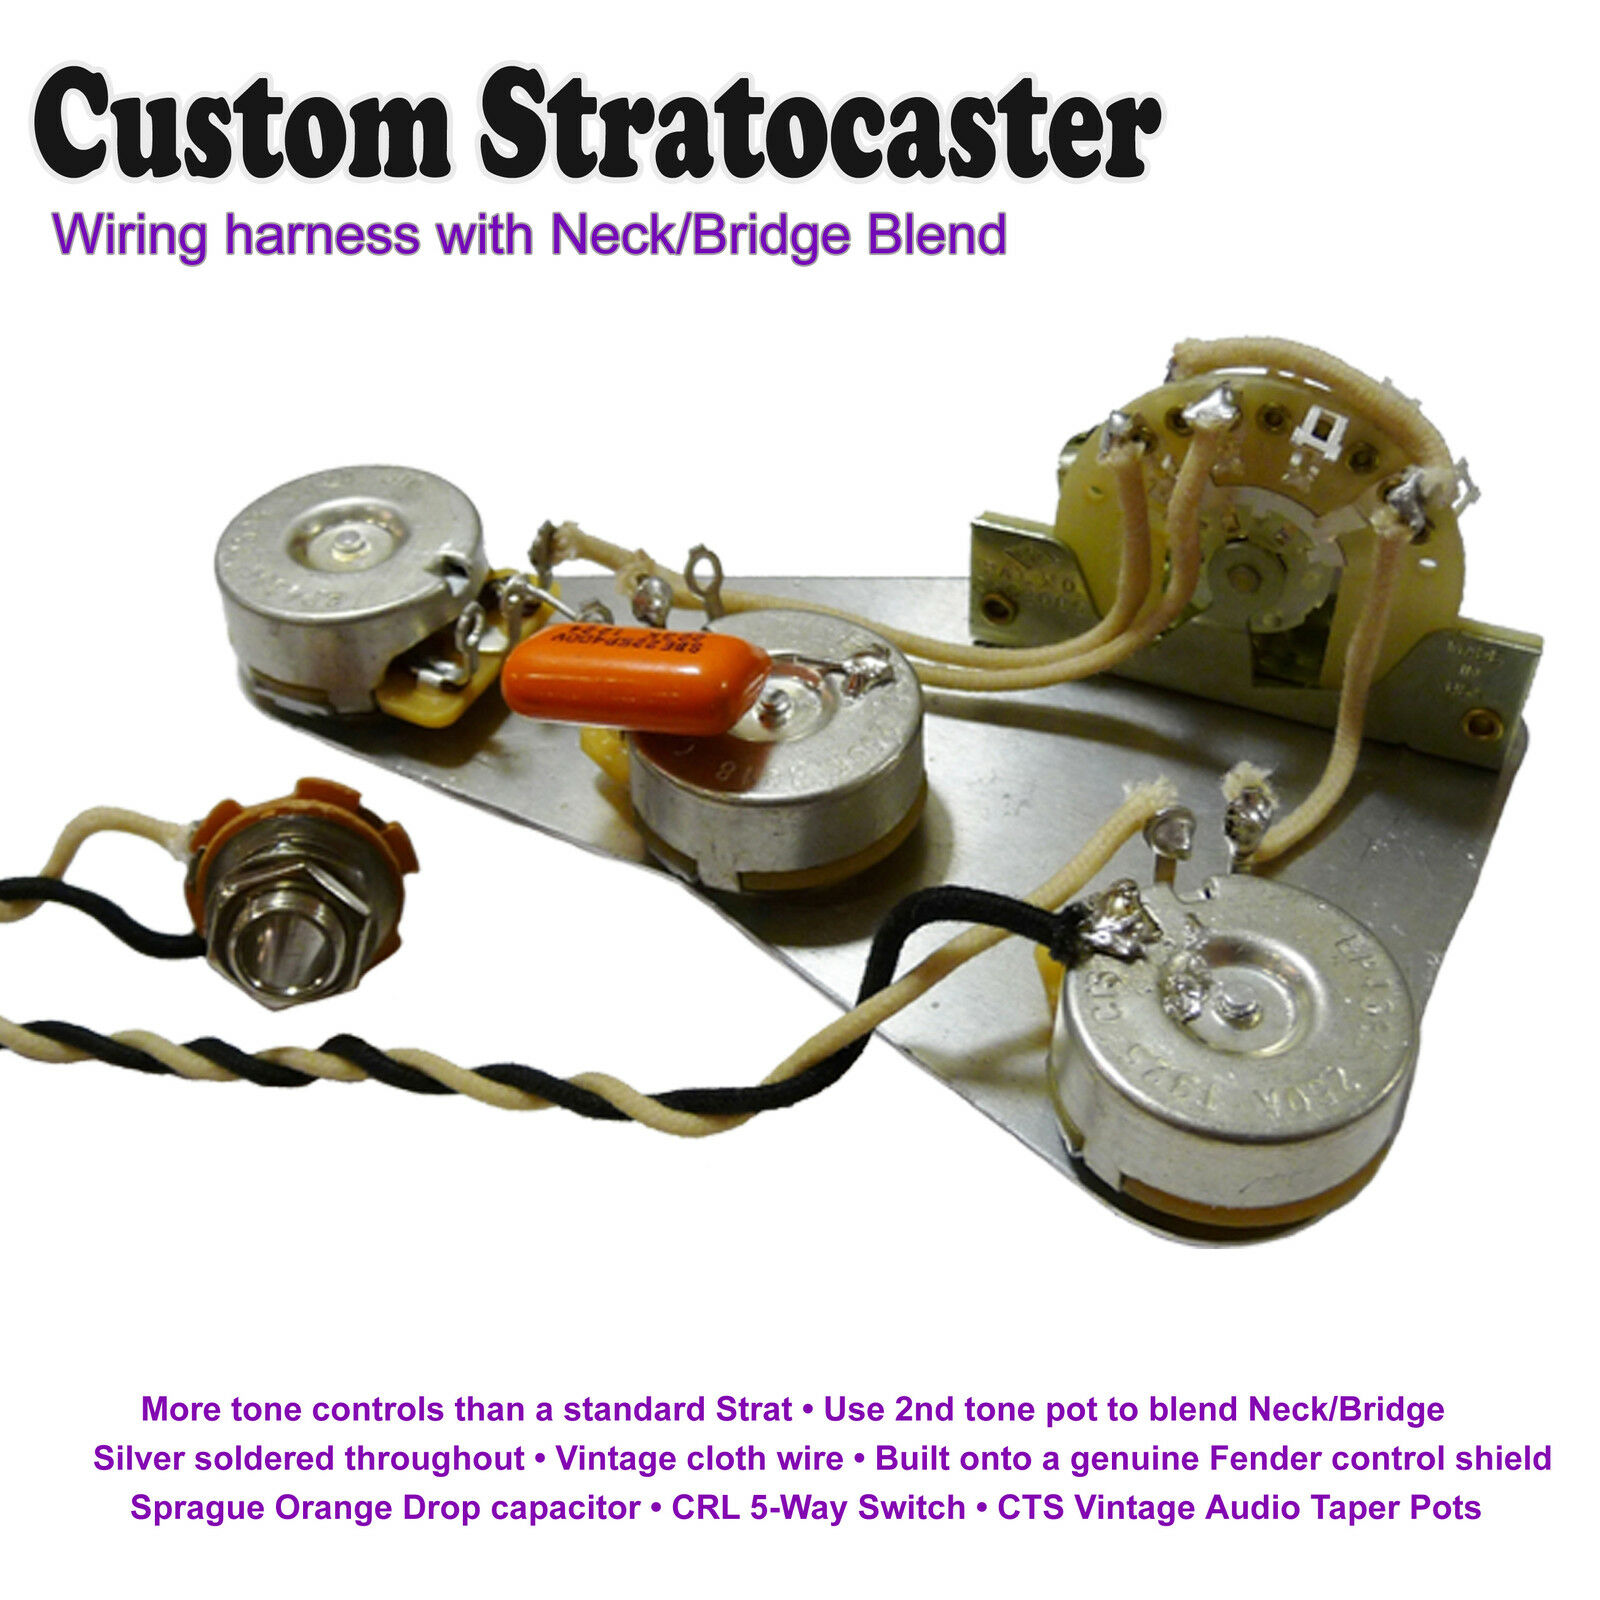 Cts Pots Wiring Diagram Strat Library U2022 View Topic Re Issues Tone Pot On Volume Deluxe Pre Wired Stratocaster Kit With Neck Bridge 1 Of 2 See More